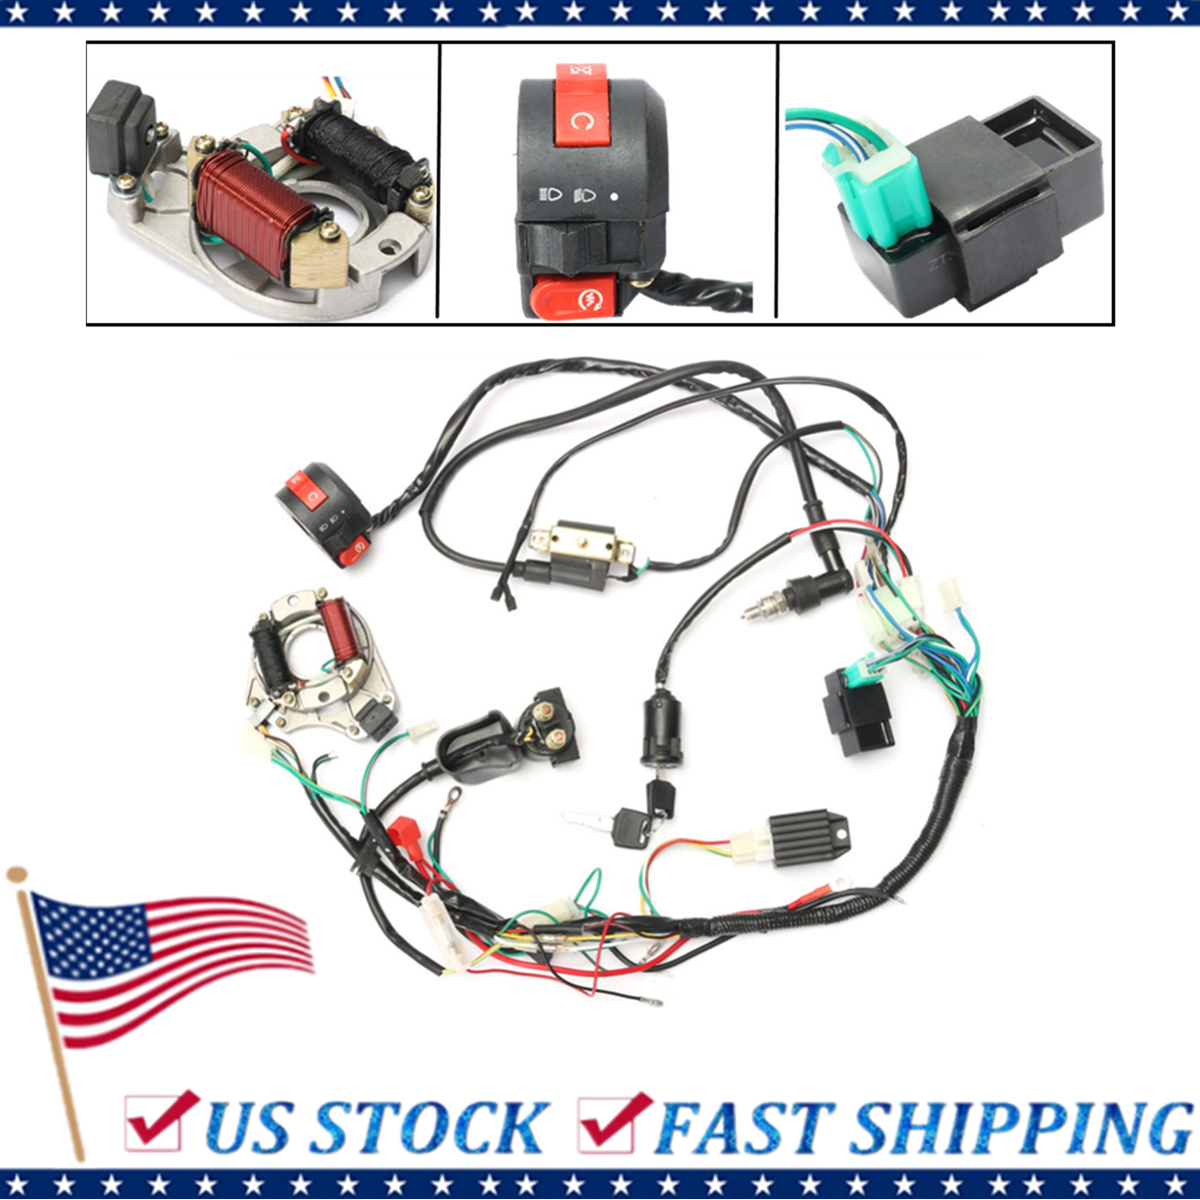 hight resolution of 1 set 50 70 90 110cc cdi wire harness assembly wiring kit atv1 set 50 70 90 110cc cdi wire harness assembly wiring kit atv electric start quad only fit for